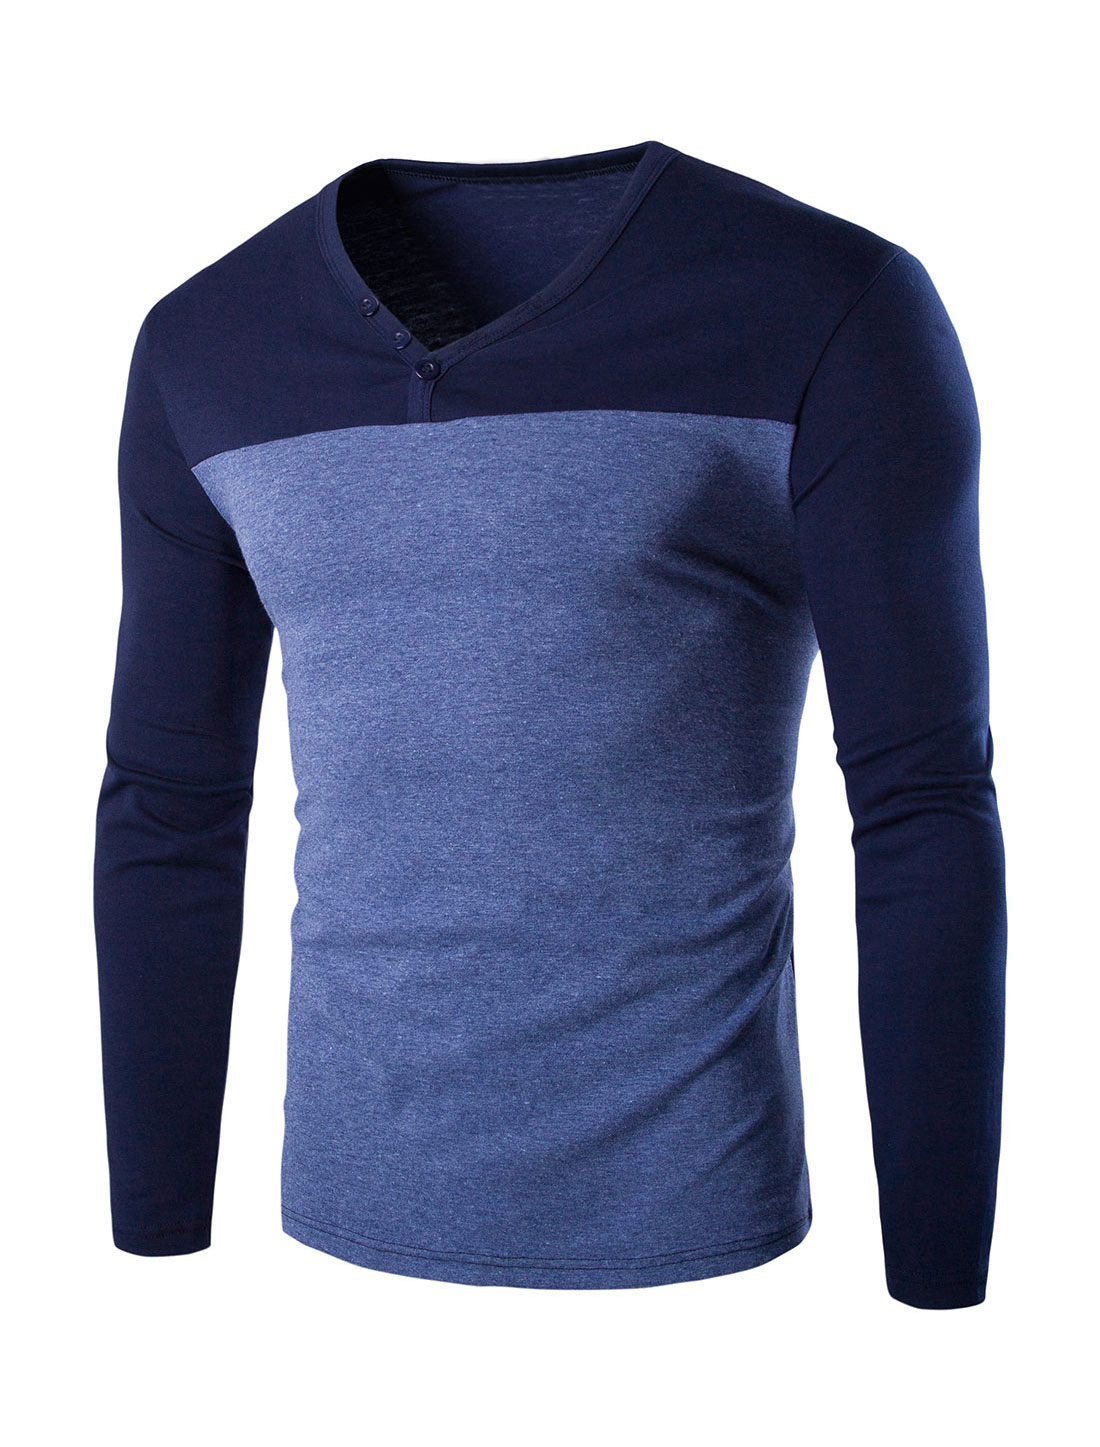 Men Color Block Buttons Upper Long Sleeves Paneled T-shirt Blue M